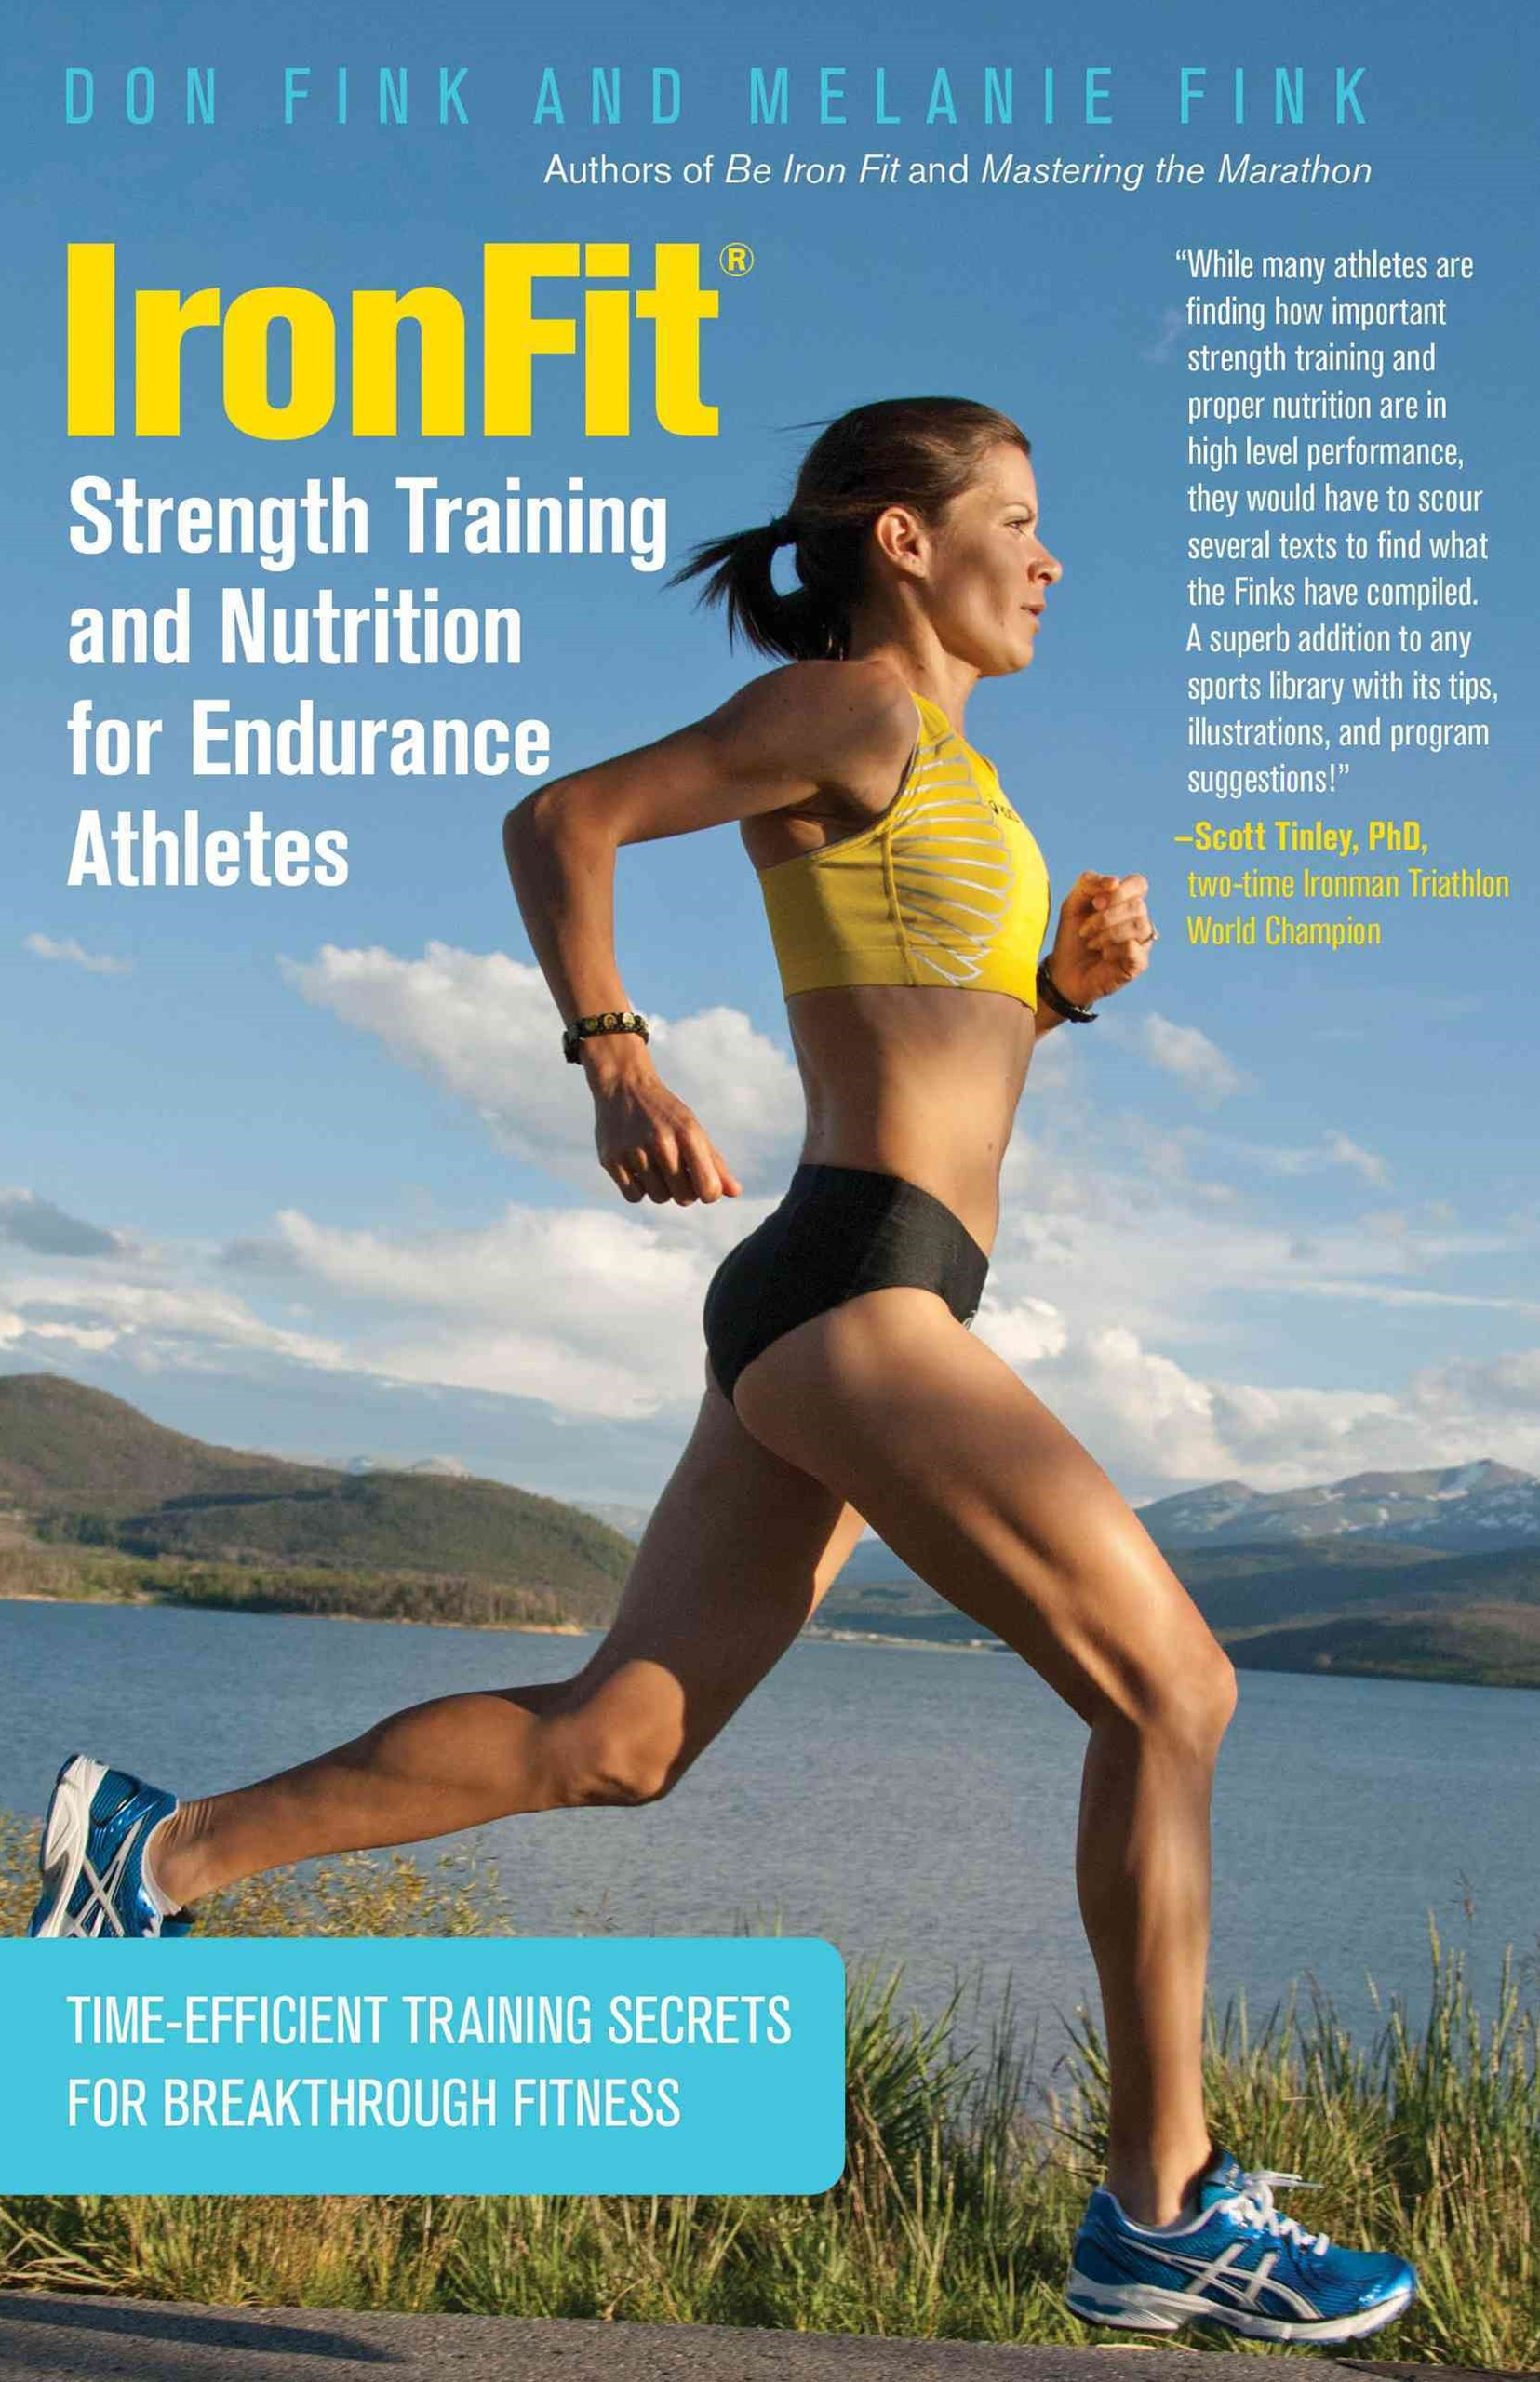 Ironfit - Strength Training and Nutrition for Endurance Athletes